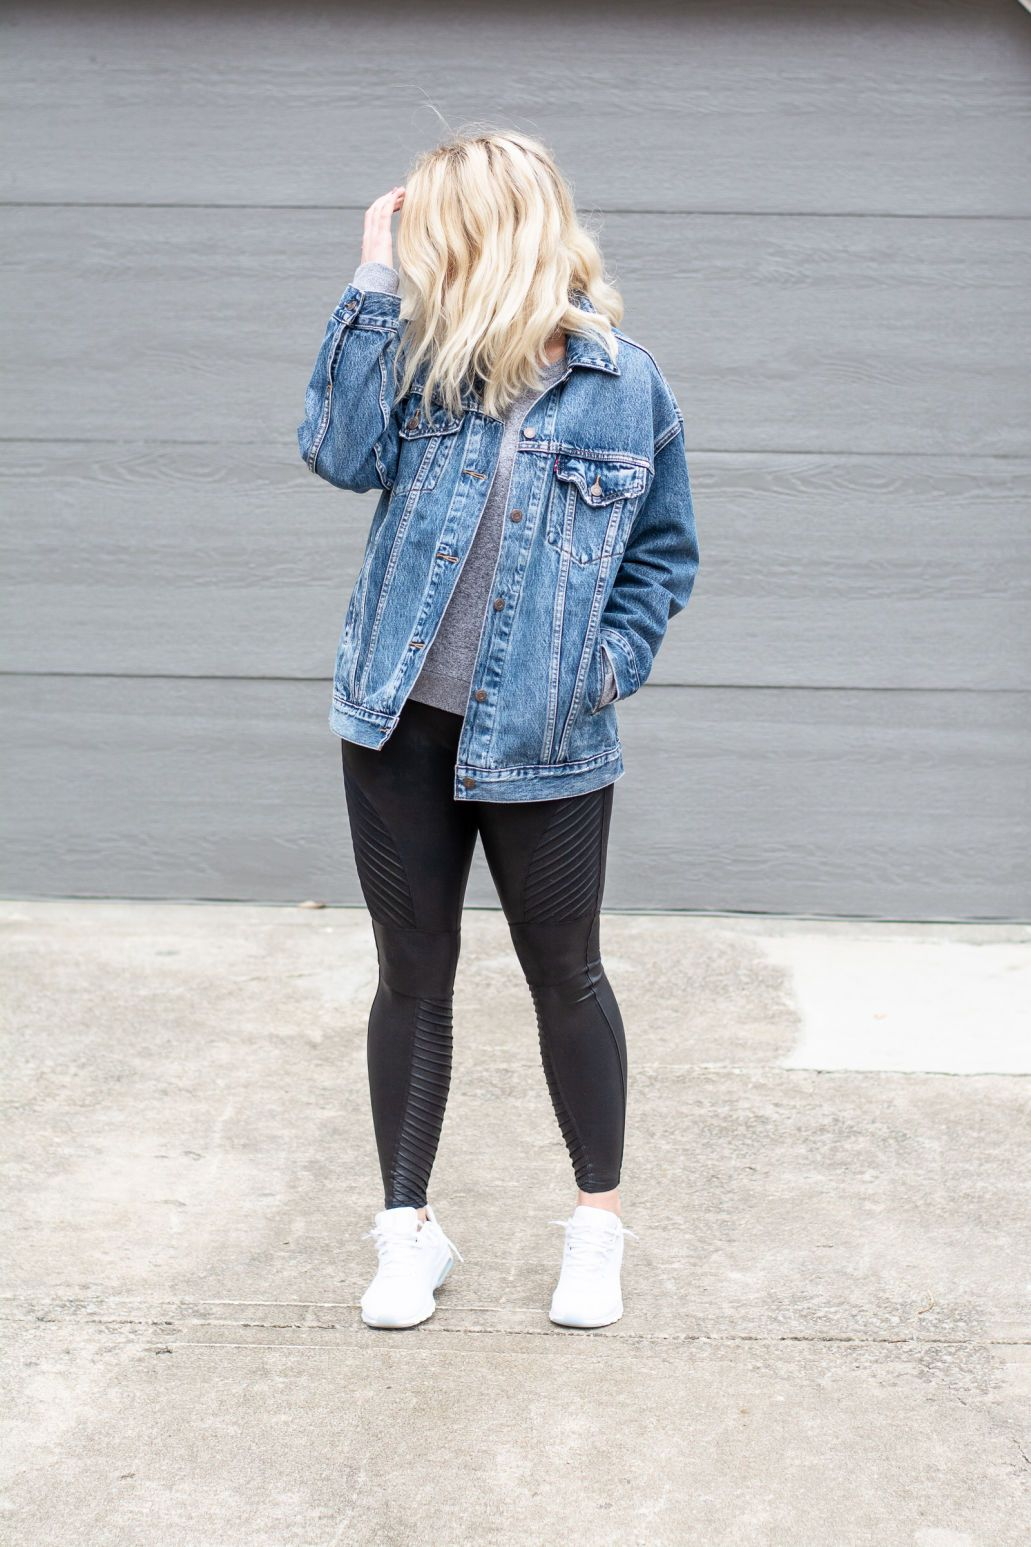 Oversized Jean Jacket Spanx Moto Leggings Lsr Athleisure Outfits Leggings Jean Jacket Outfits Summer Outfits With Leggings [ 1547 x 1031 Pixel ]